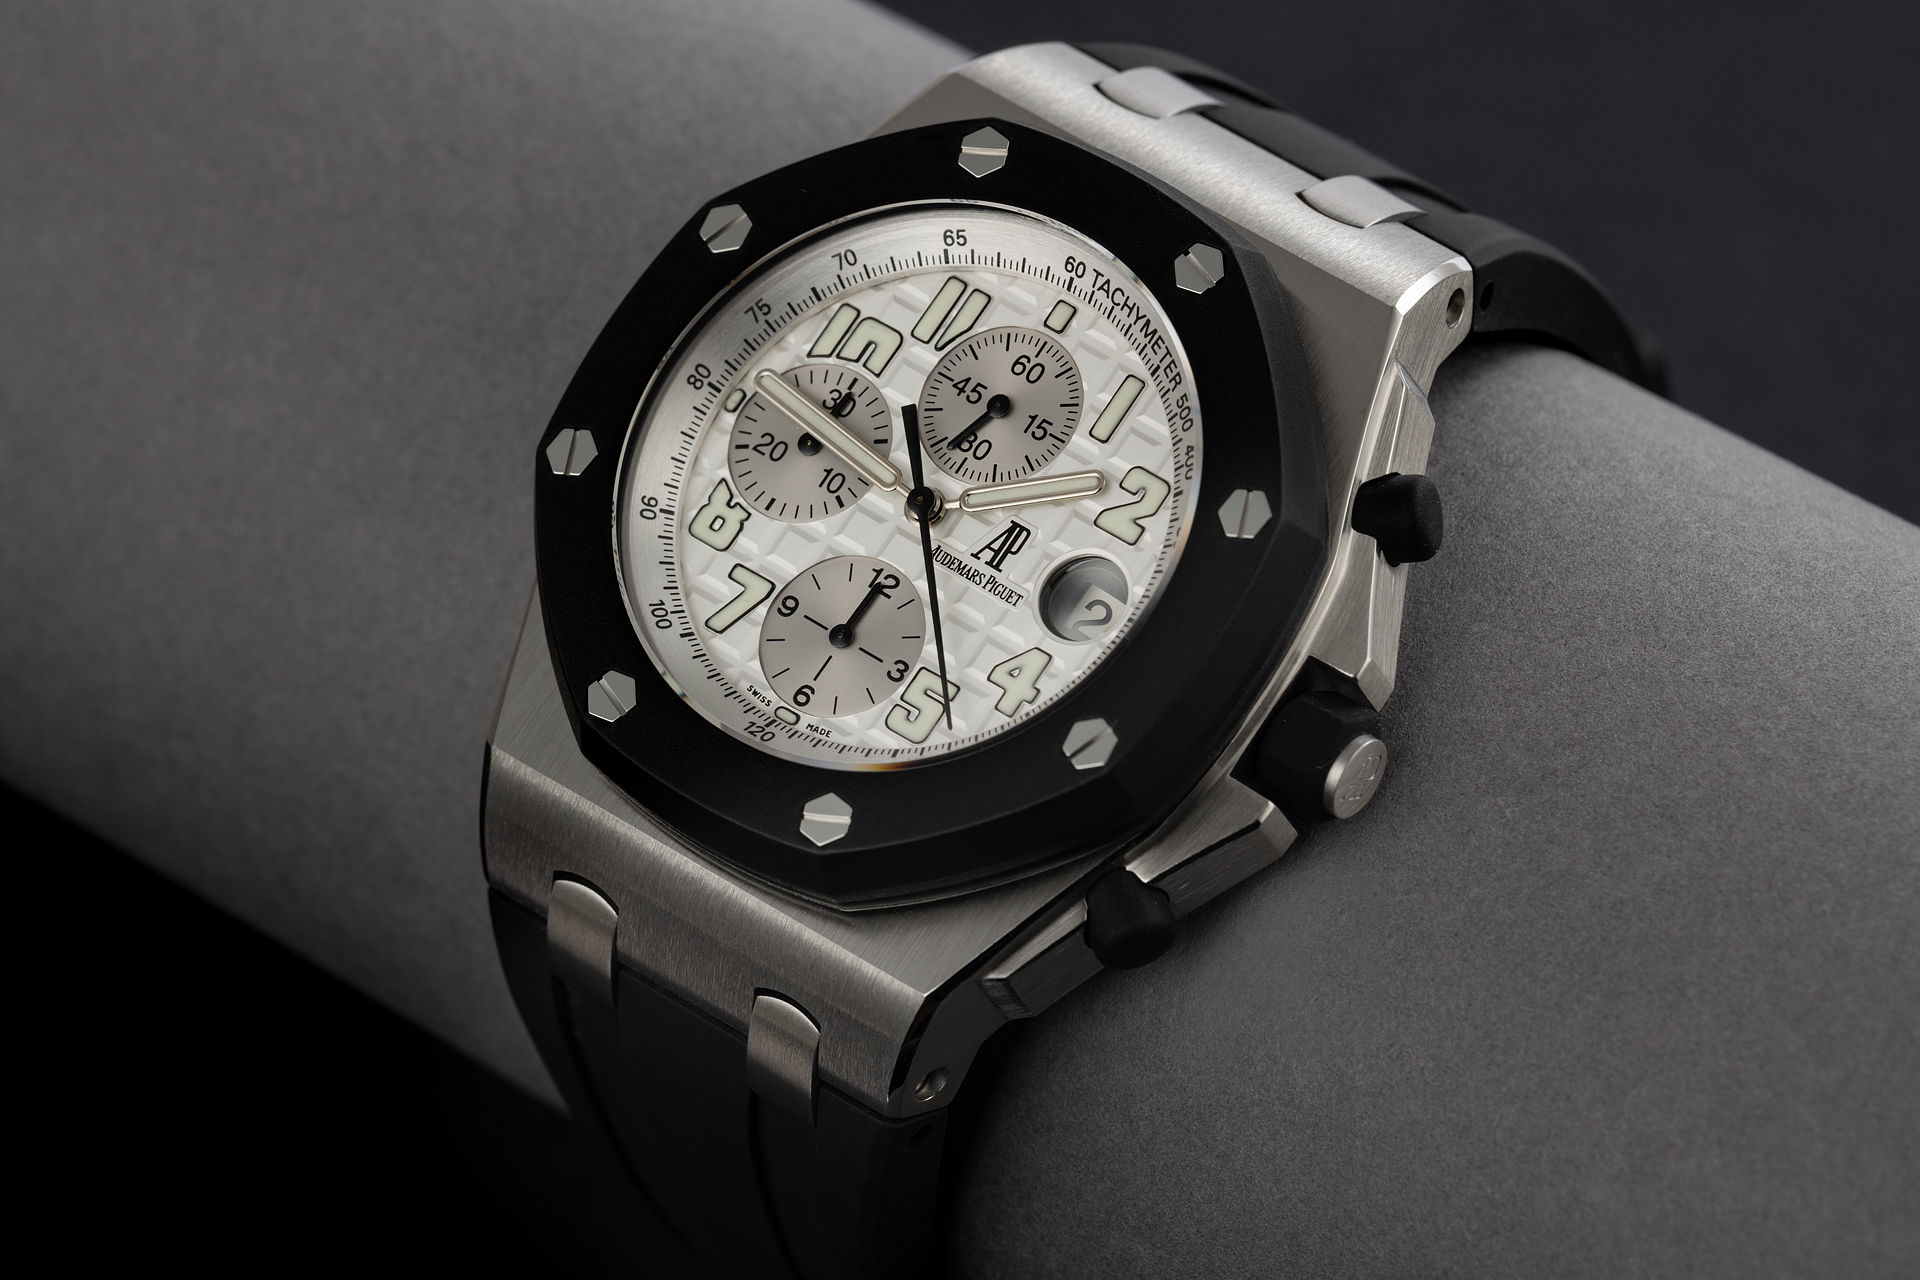 ref 25940SK.OO.D002CA.01 | 'Rubberclad' AP Warranty | Audemars Piguet Royal Oak Offshore